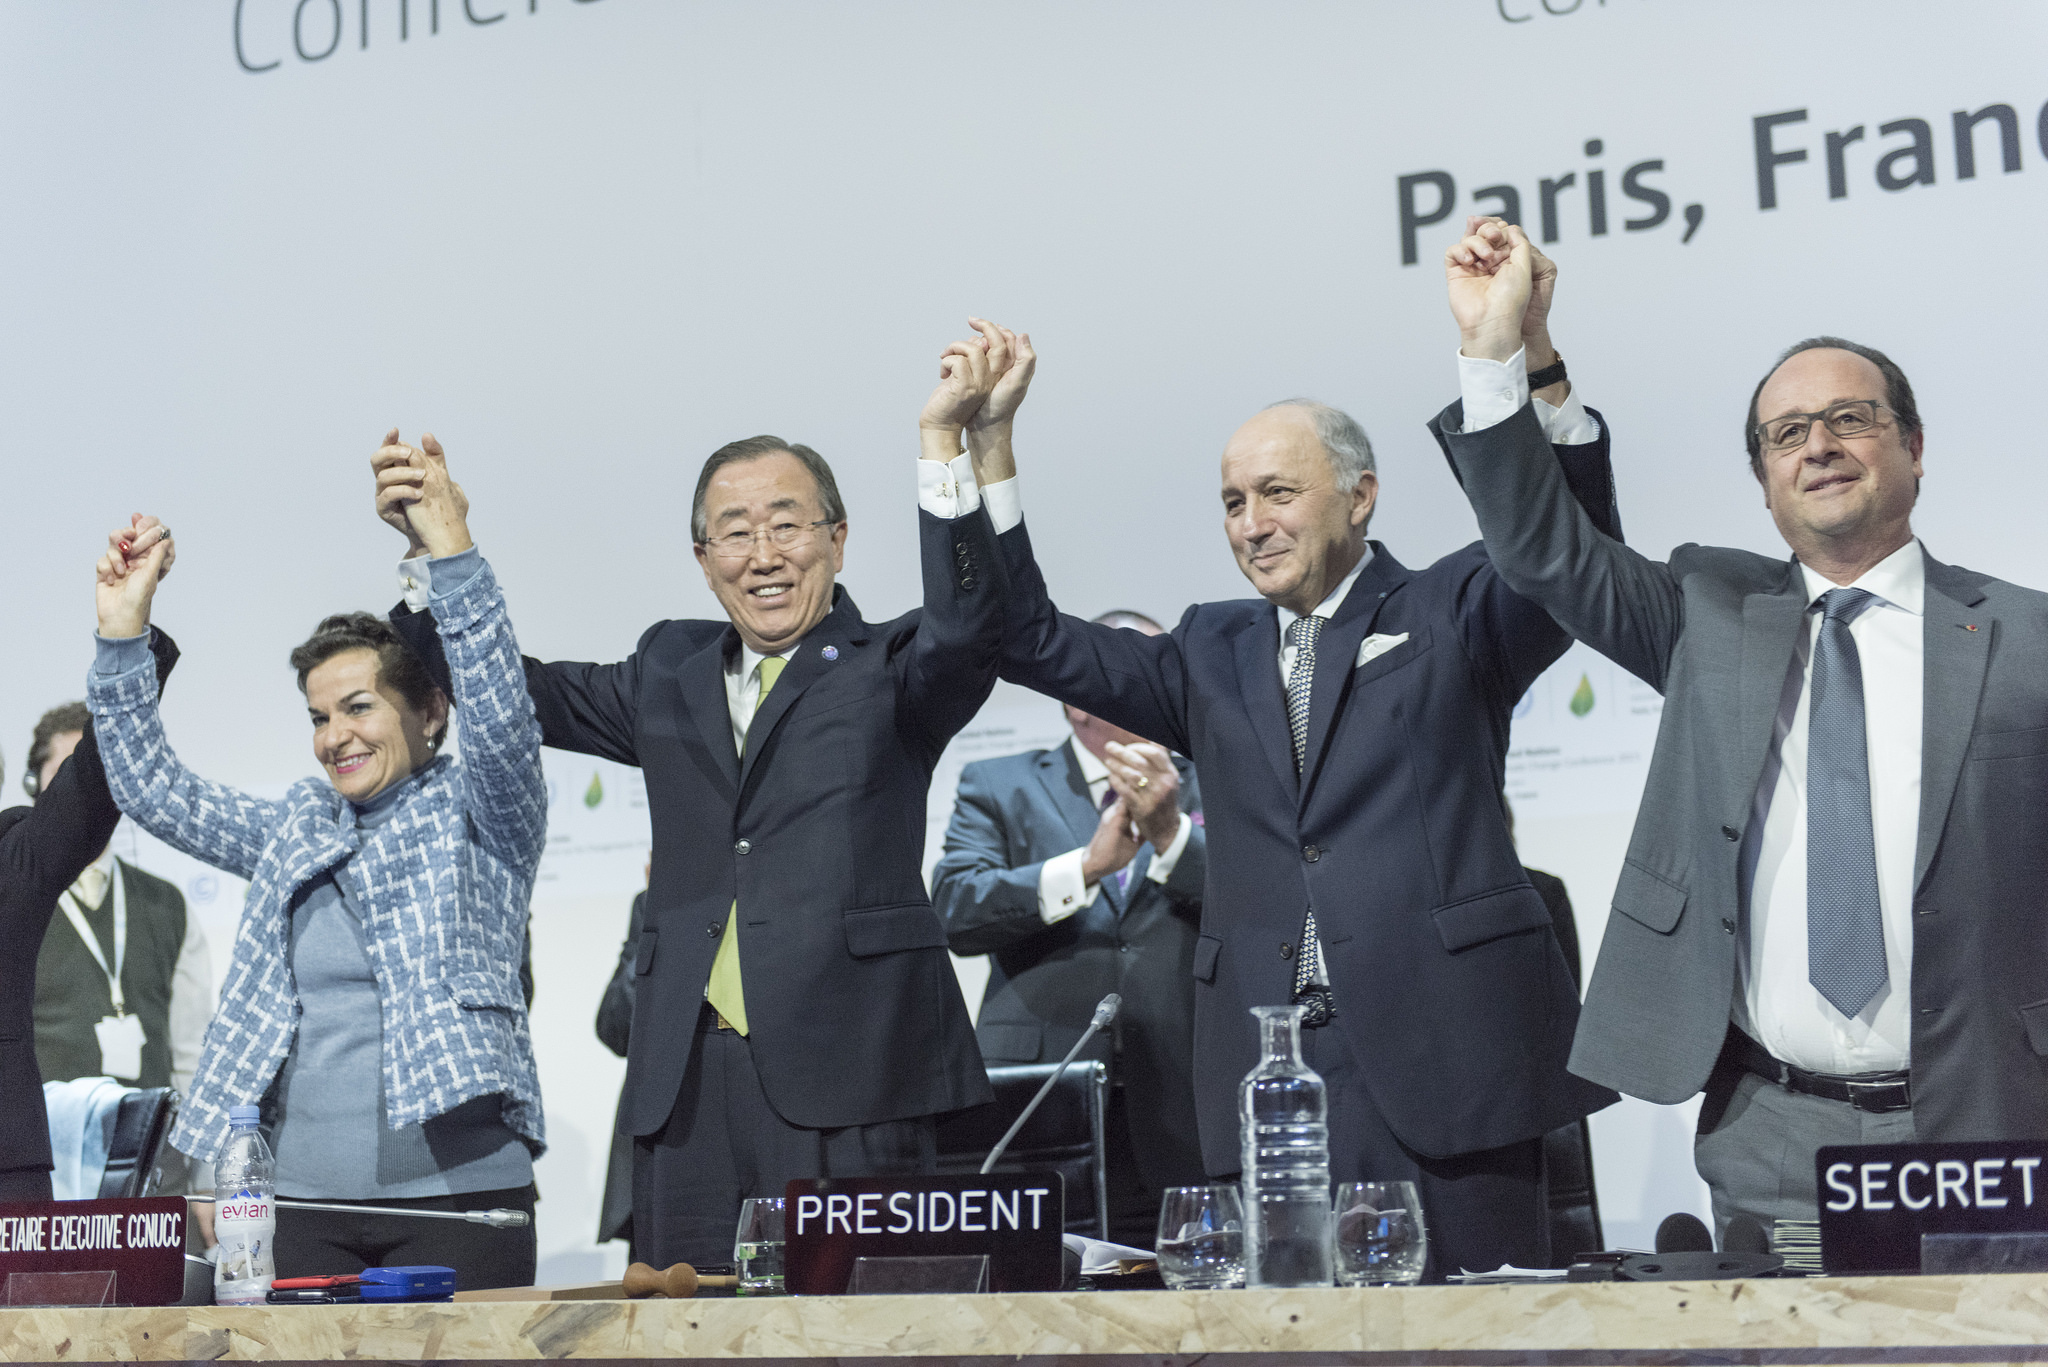 Christiana Figueres, Ban Ki-moon, Laurent Fabius and François Hollande celebrate the adoption of Paris Agreement on climate change.